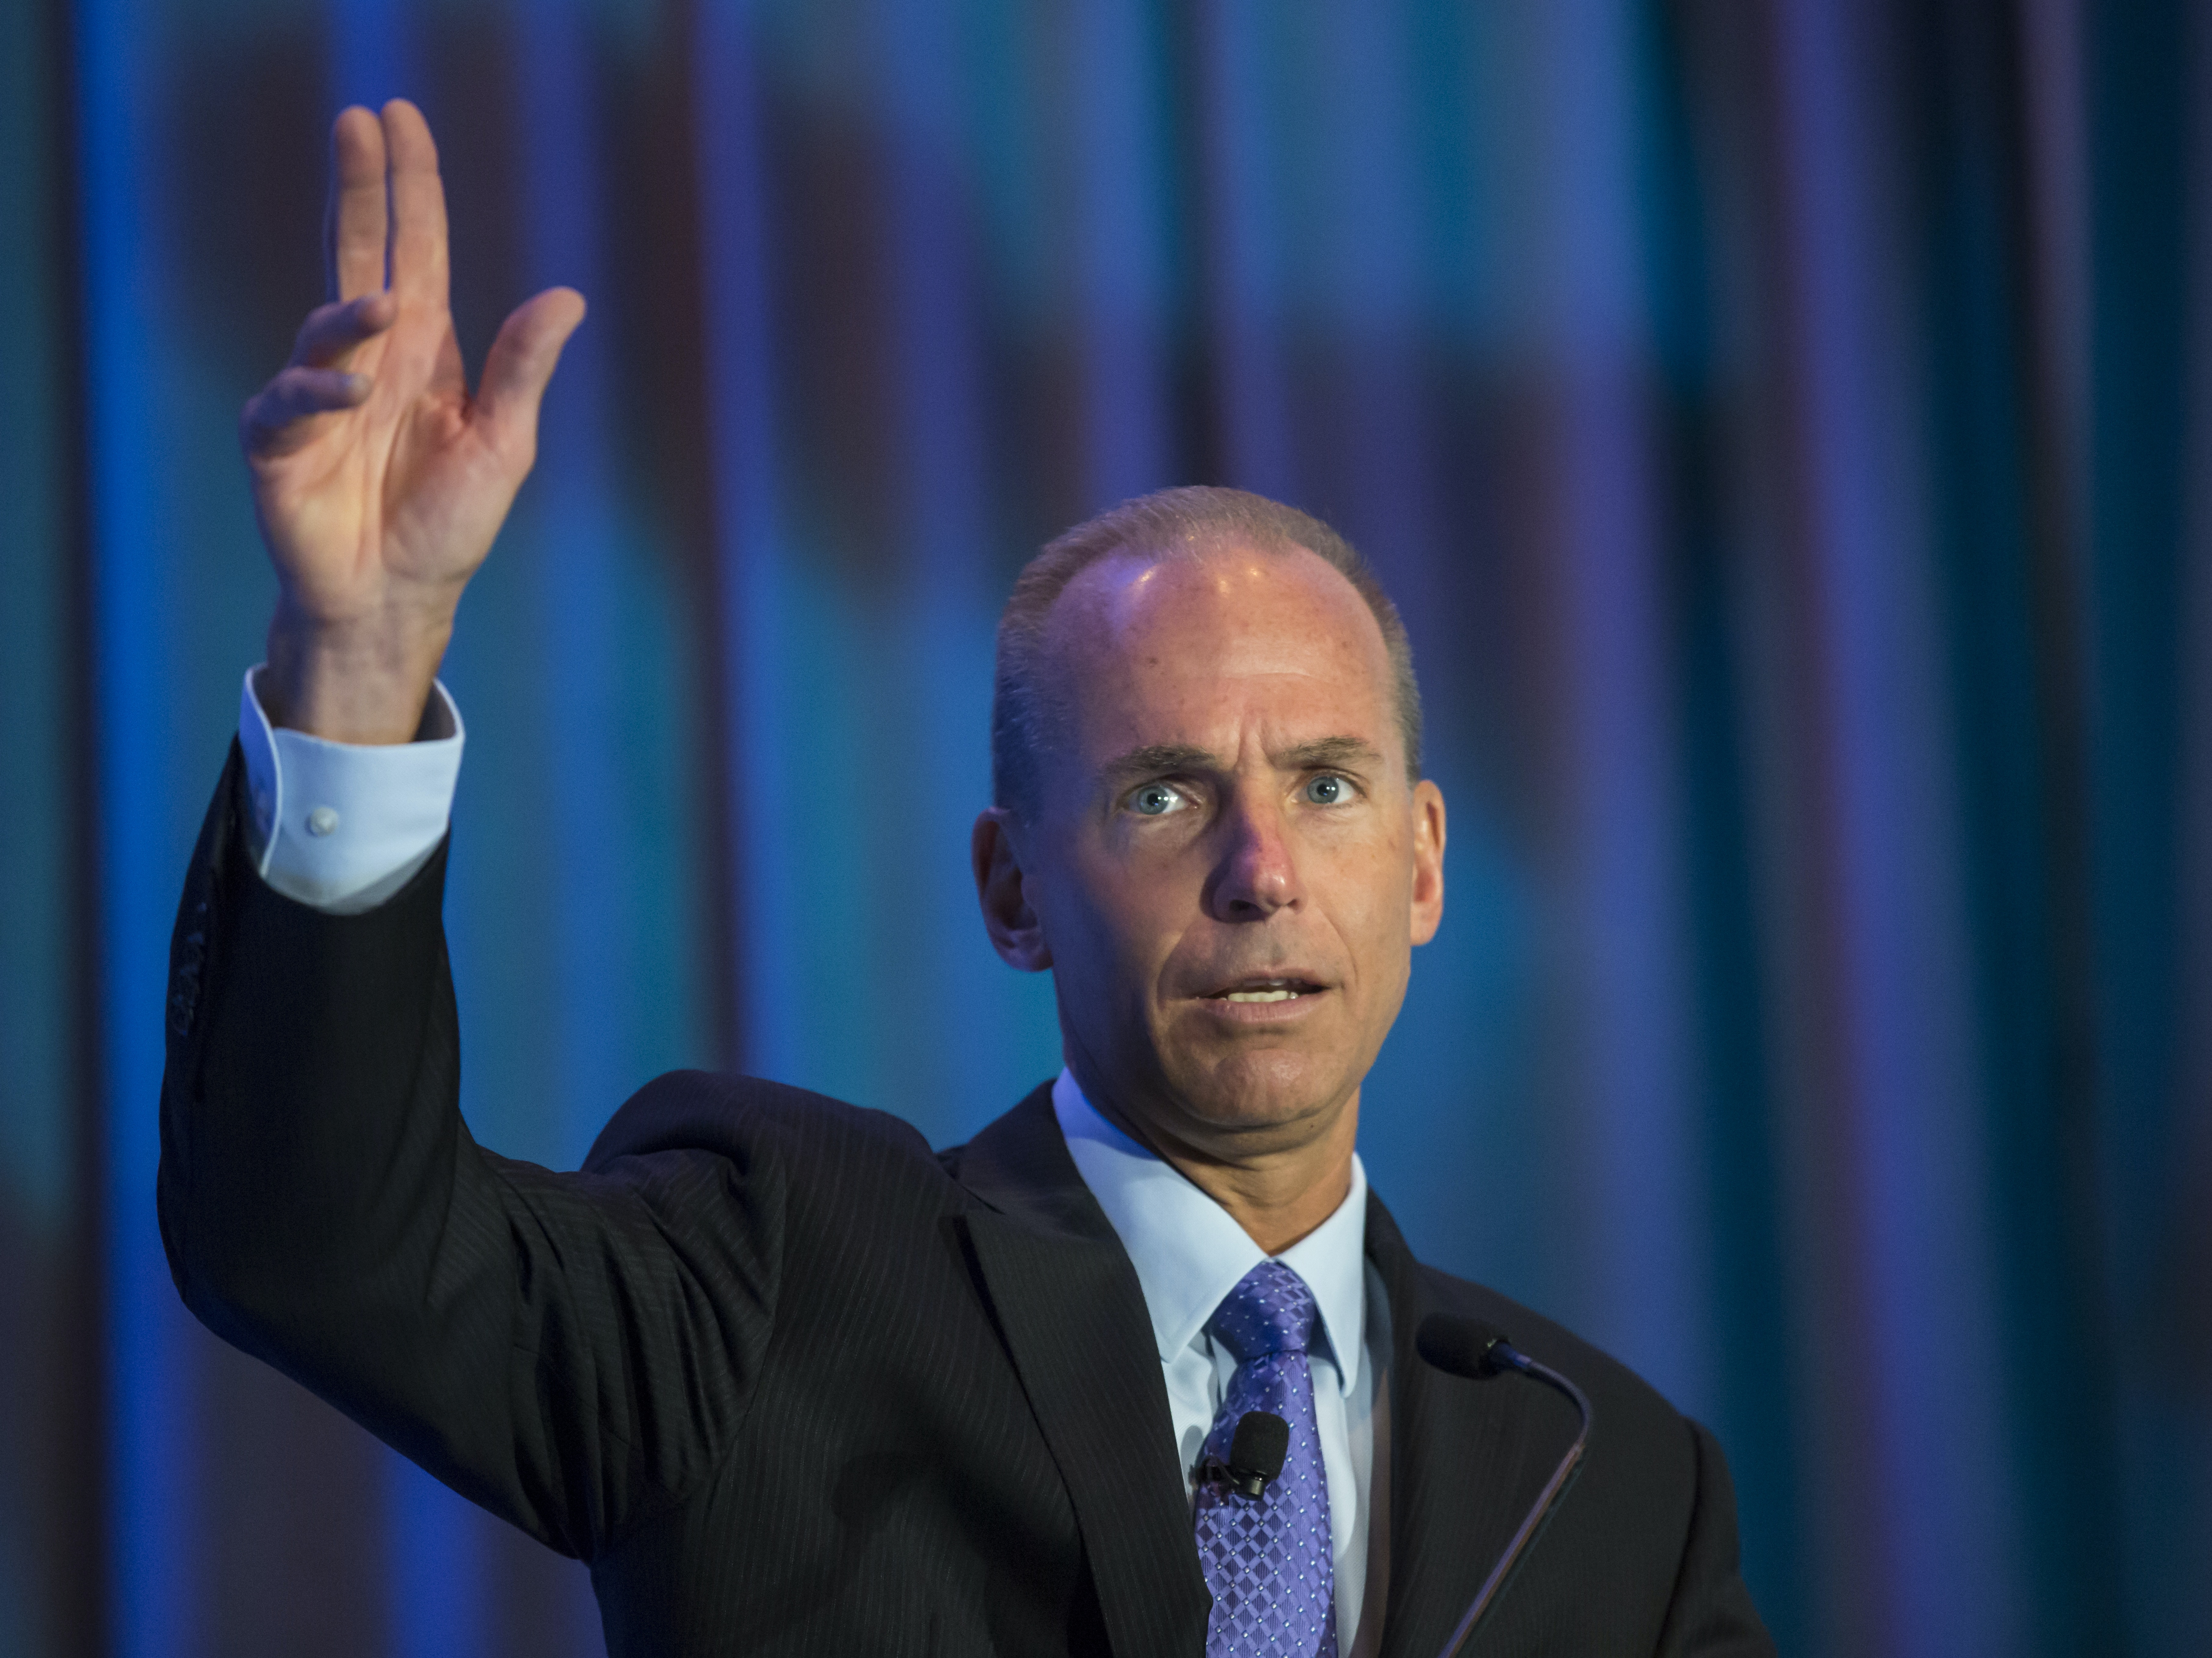 SEATTLE, WA - SEPTEMBER 22: Boeing CEO Dennis Muilenburg gives a keynote speech during the SAE Aerotech Congress on September 22, 2015 in Seattle, Washington. Muilenburg, who took over as Boeing CEO in July of 2015, will be giving Chinese President Xi Jinping a tour of Everett, Washington Boeing Factory during the president's visit to the United States. (Photo by Stephen Brashear/Getty Images)